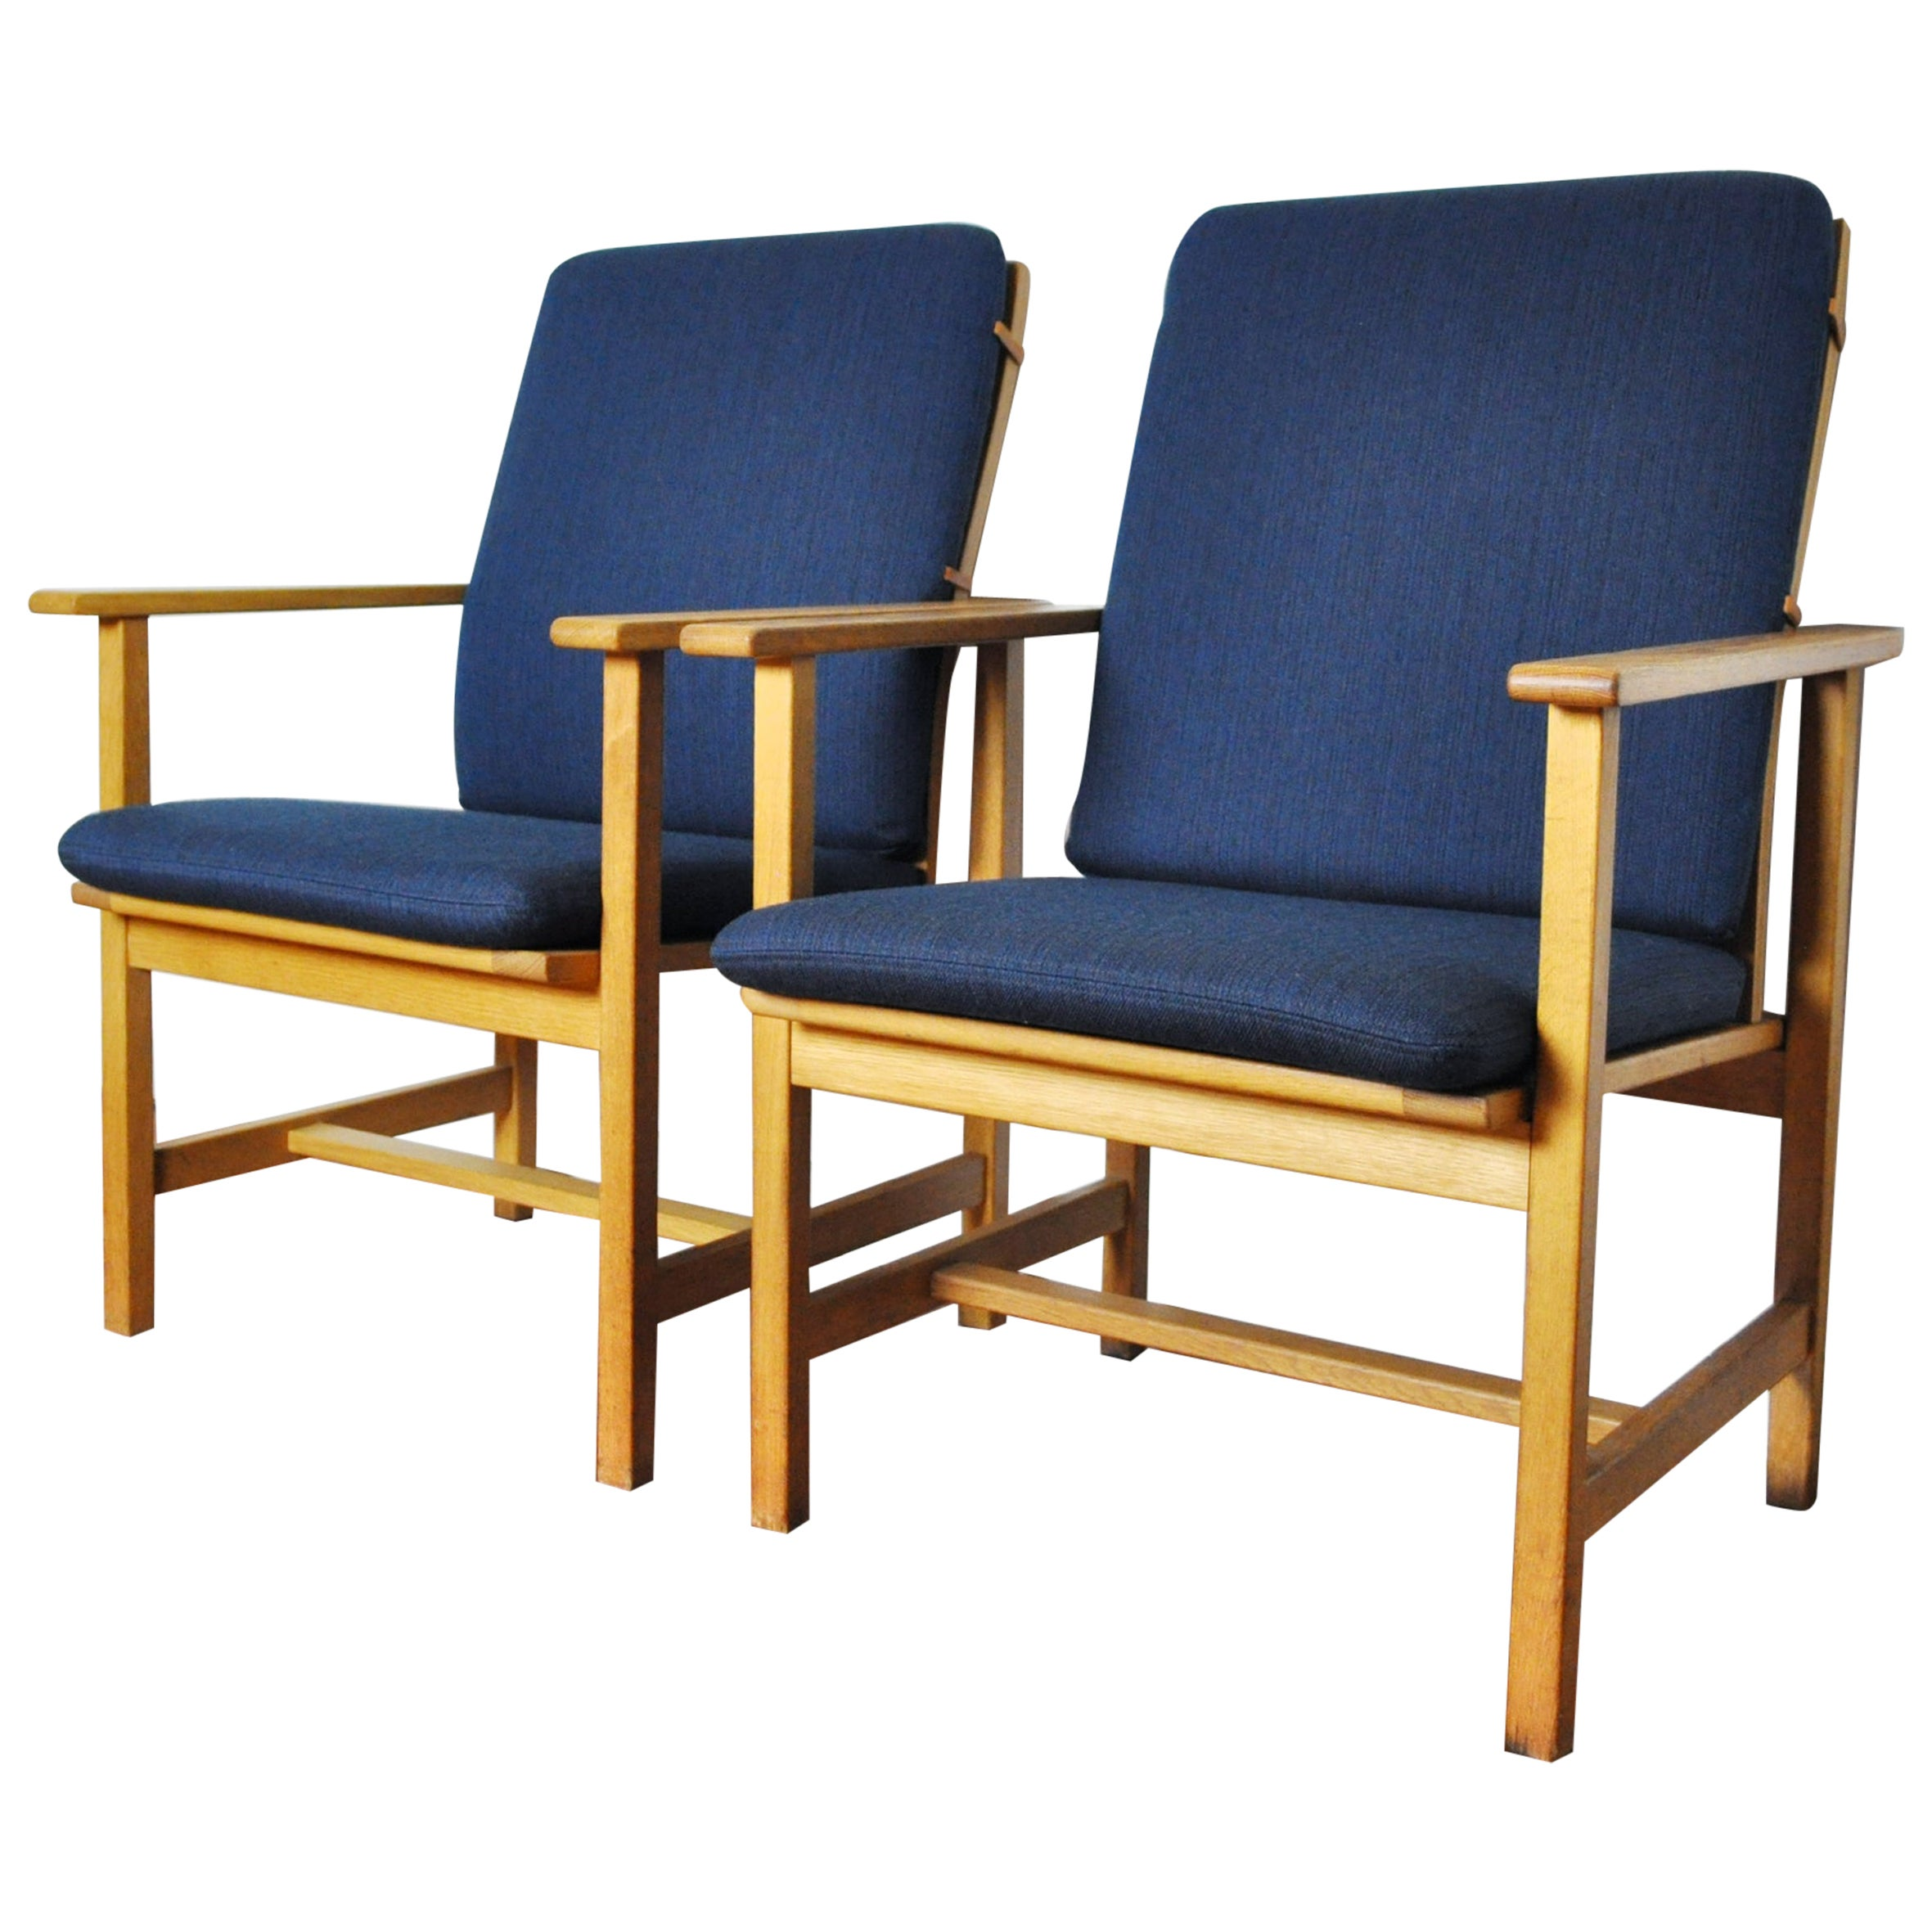 Danish Modern Oak Armchairs with Navy Blue New Upholstery by Børge Mogensen